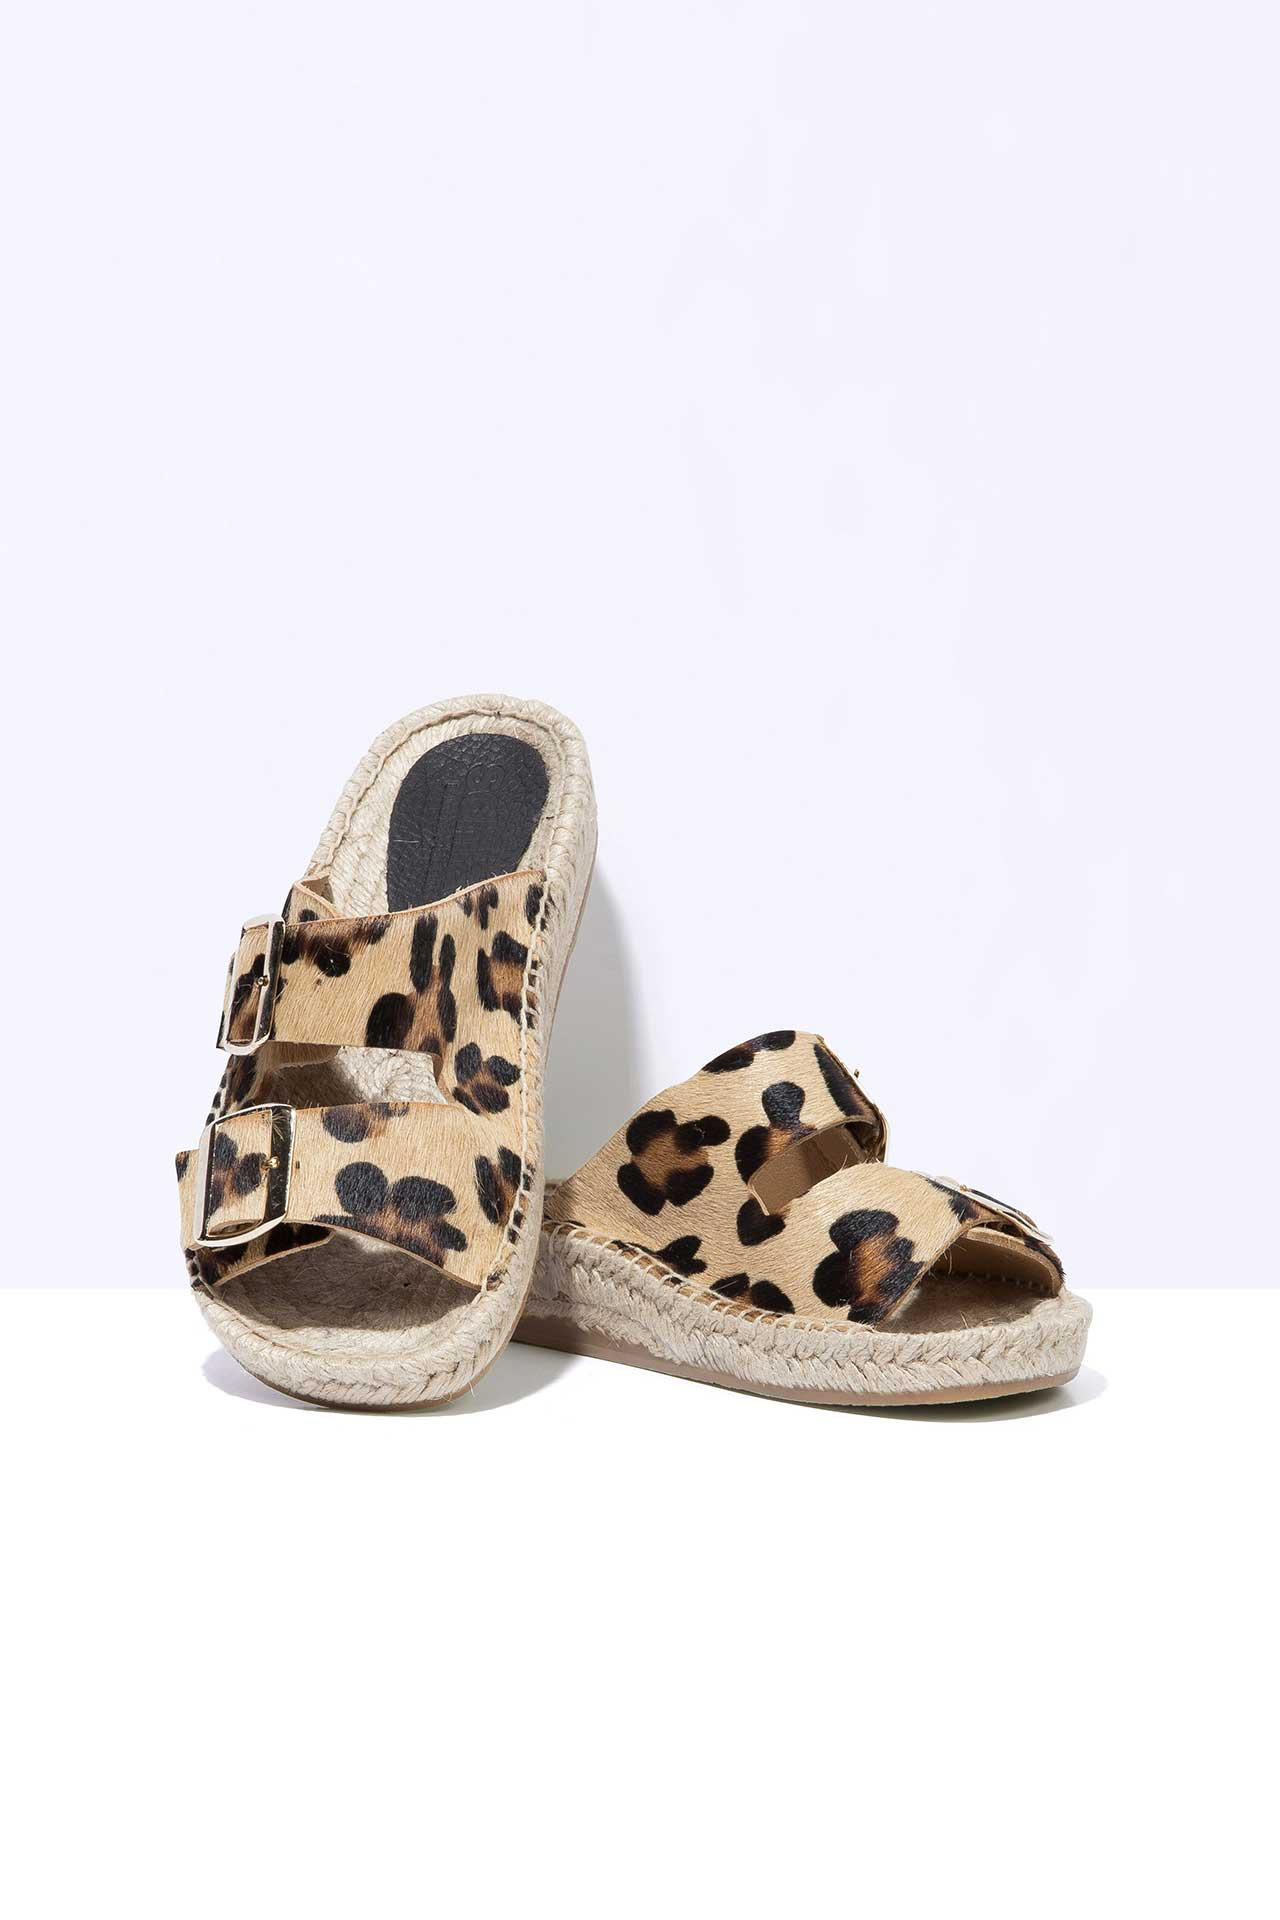 LEOPARD NEVA - Hair-On Leather Buckle Espadrille